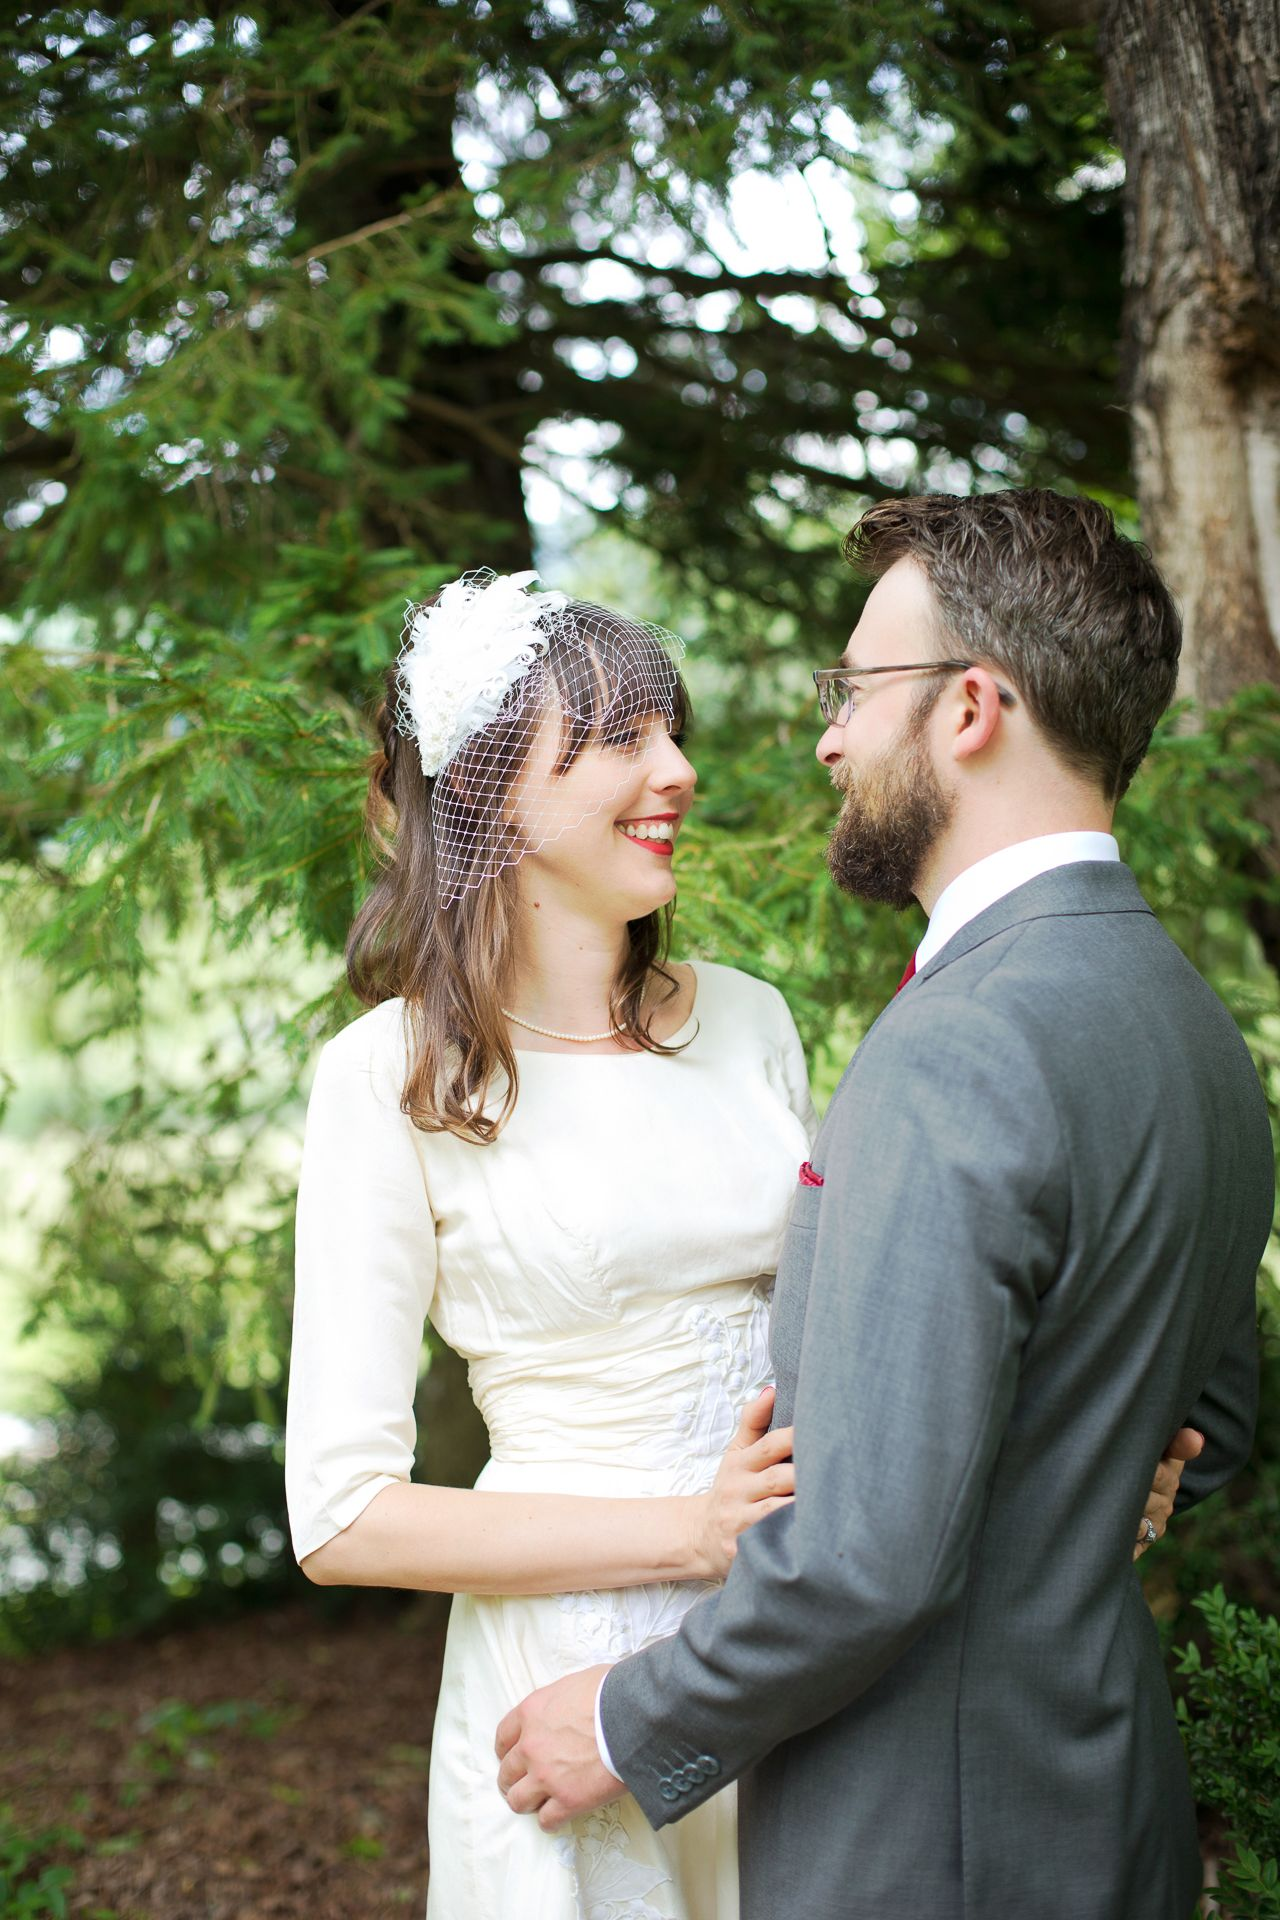 local wedding style of couples in nc high country. photos by